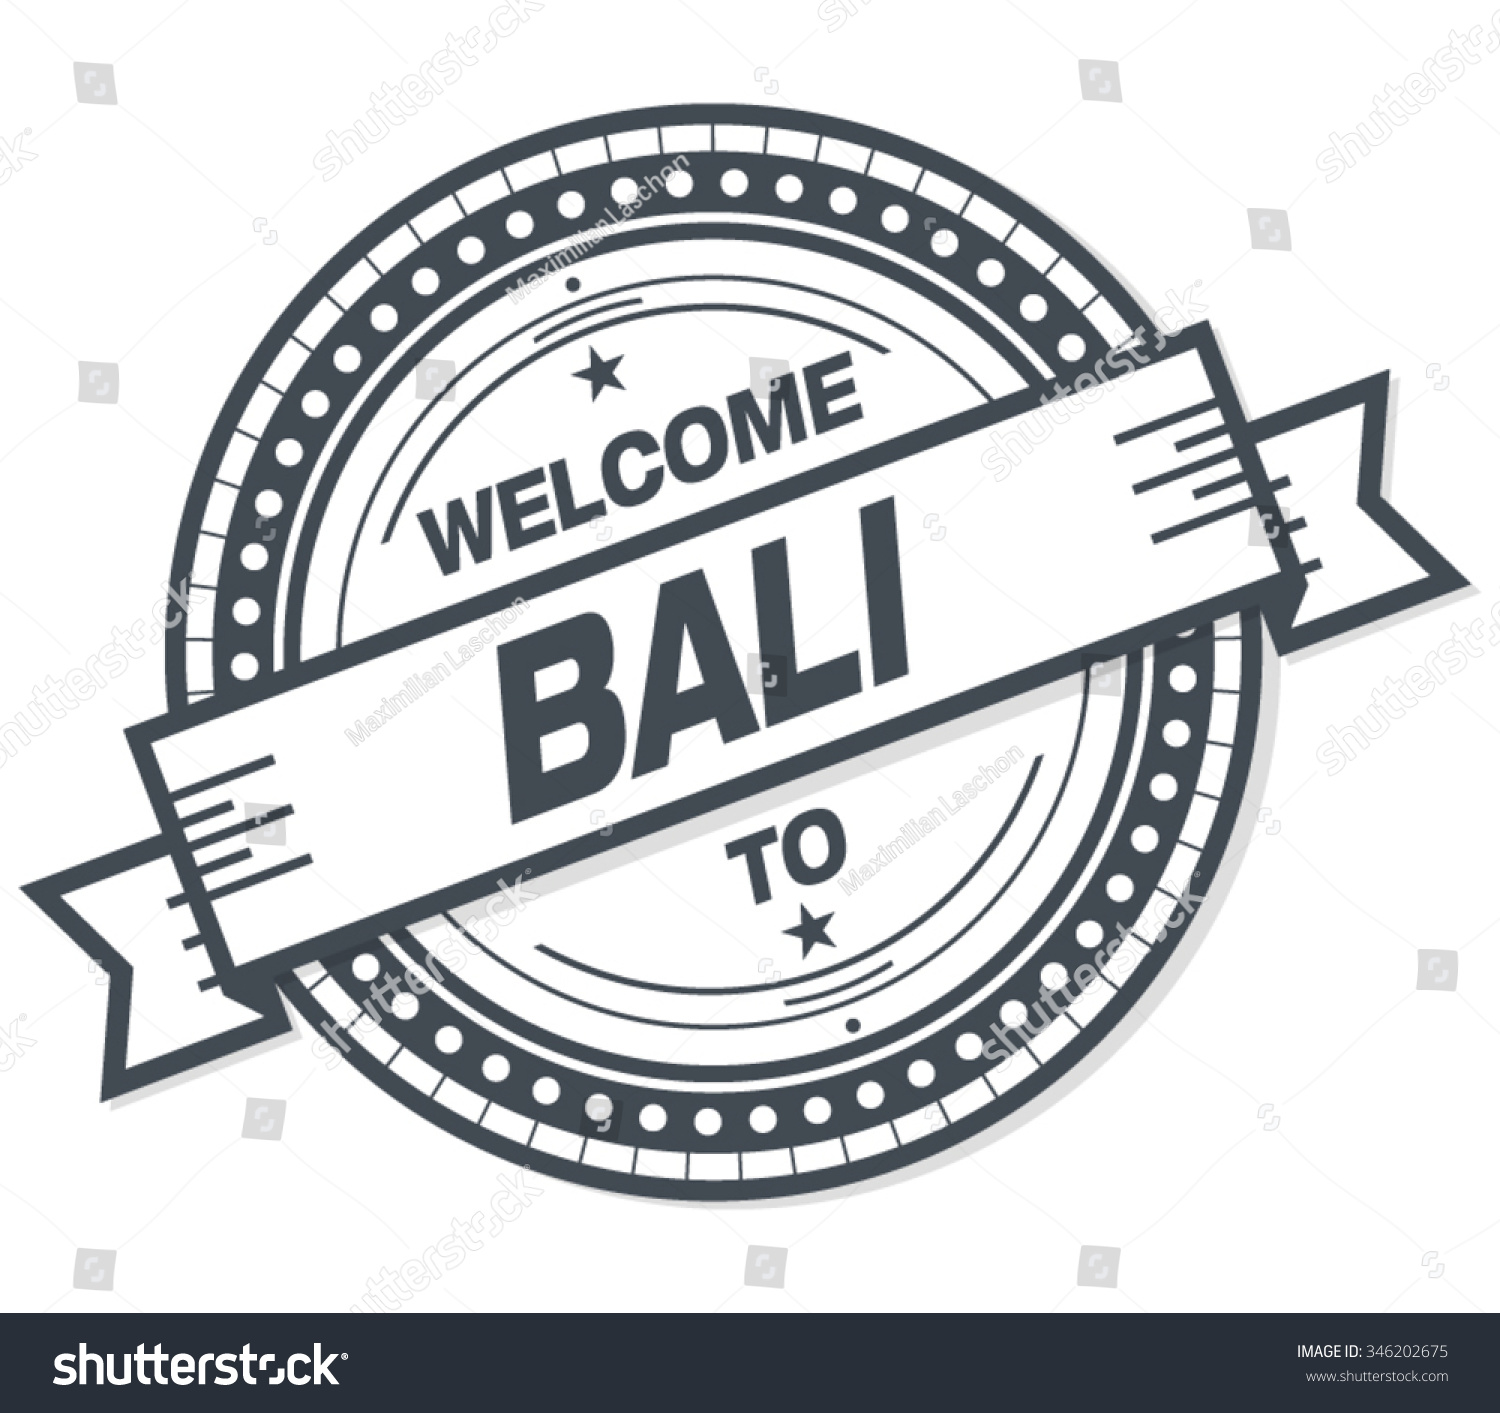 Welcome bali badge stamp stock vector royalty free 346202675 welcome to bali badge stamp altavistaventures Gallery